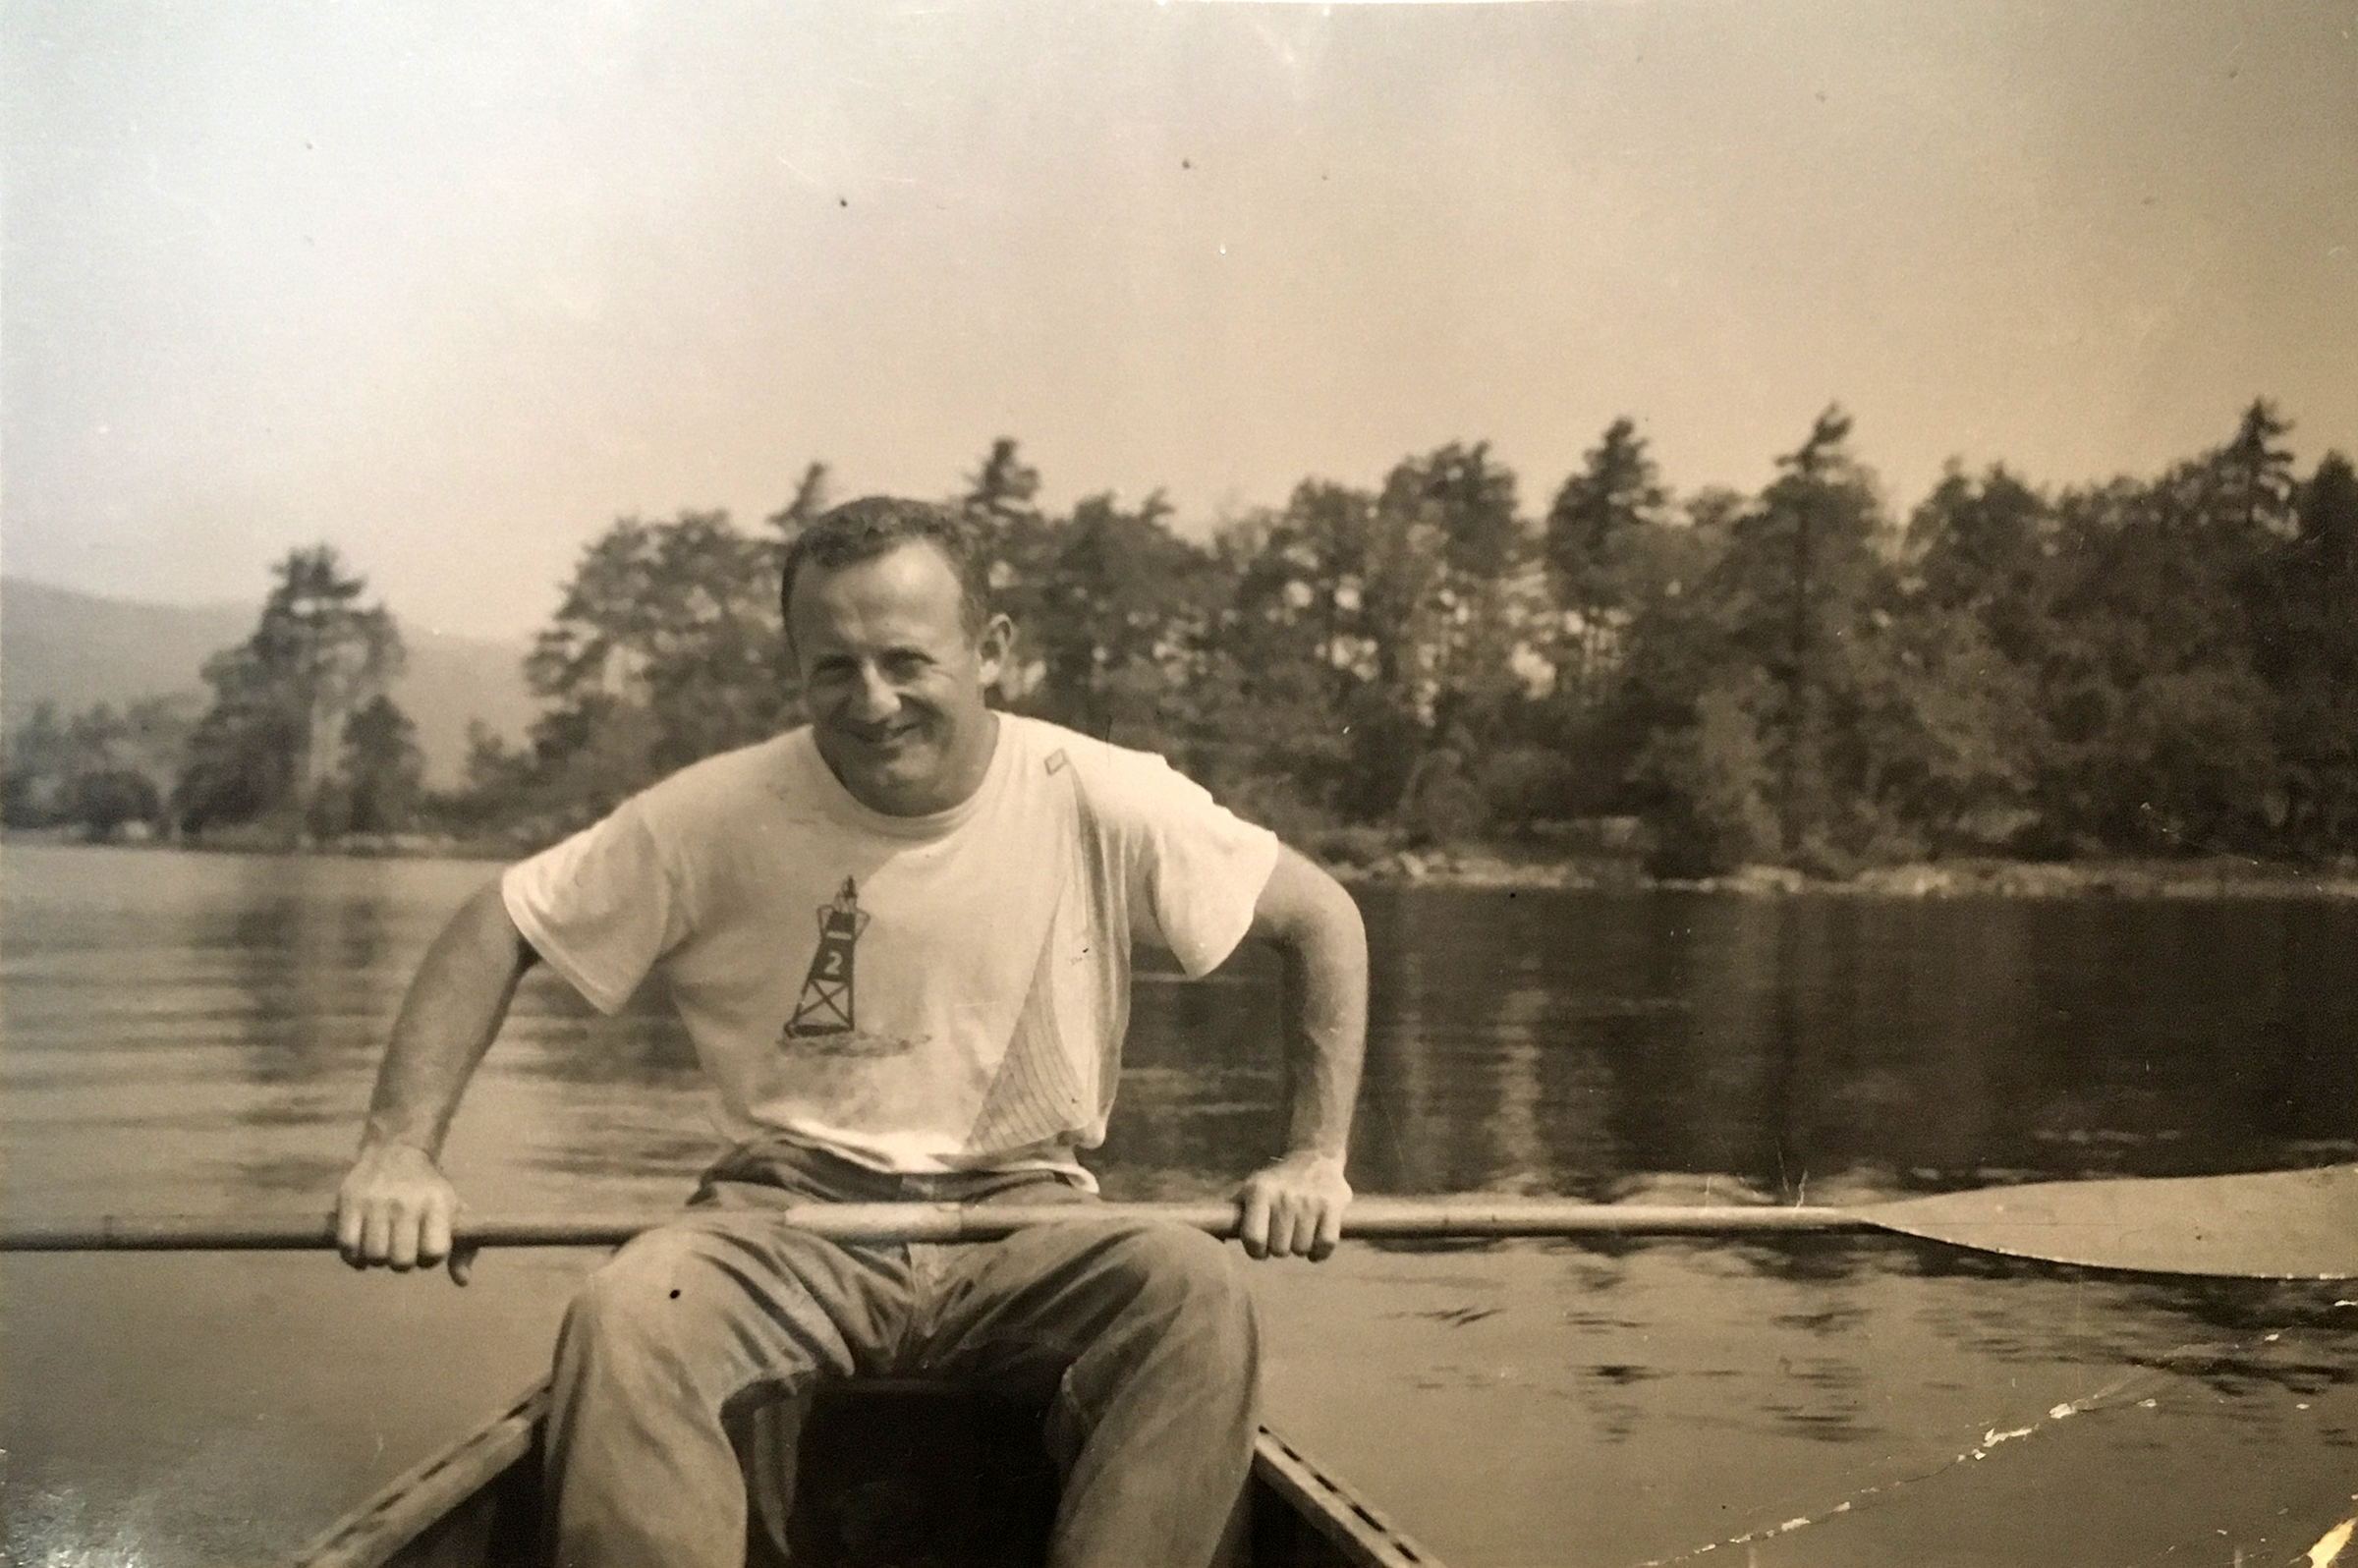 Figure 3. The author's father, Max Snyder, on the water, circa 1955. Collection of Ellen Snyder-Grenier.